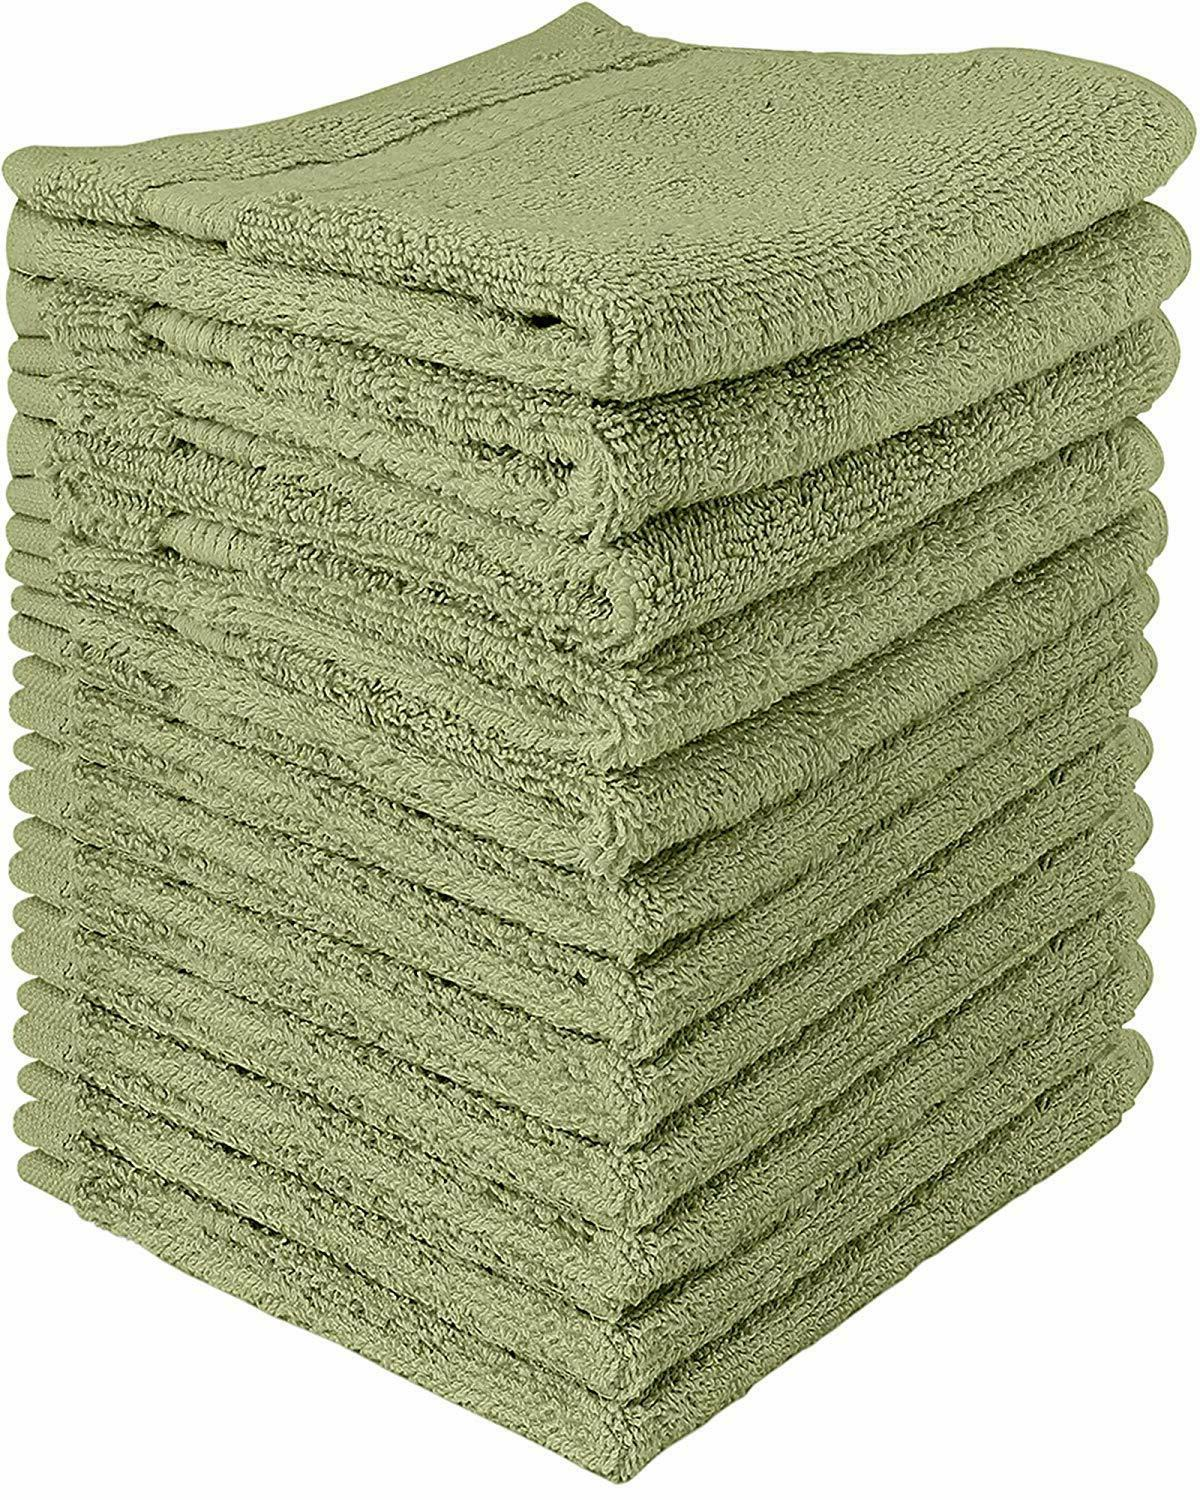 12 Luxury Cotton Washcloth Inch in Towels